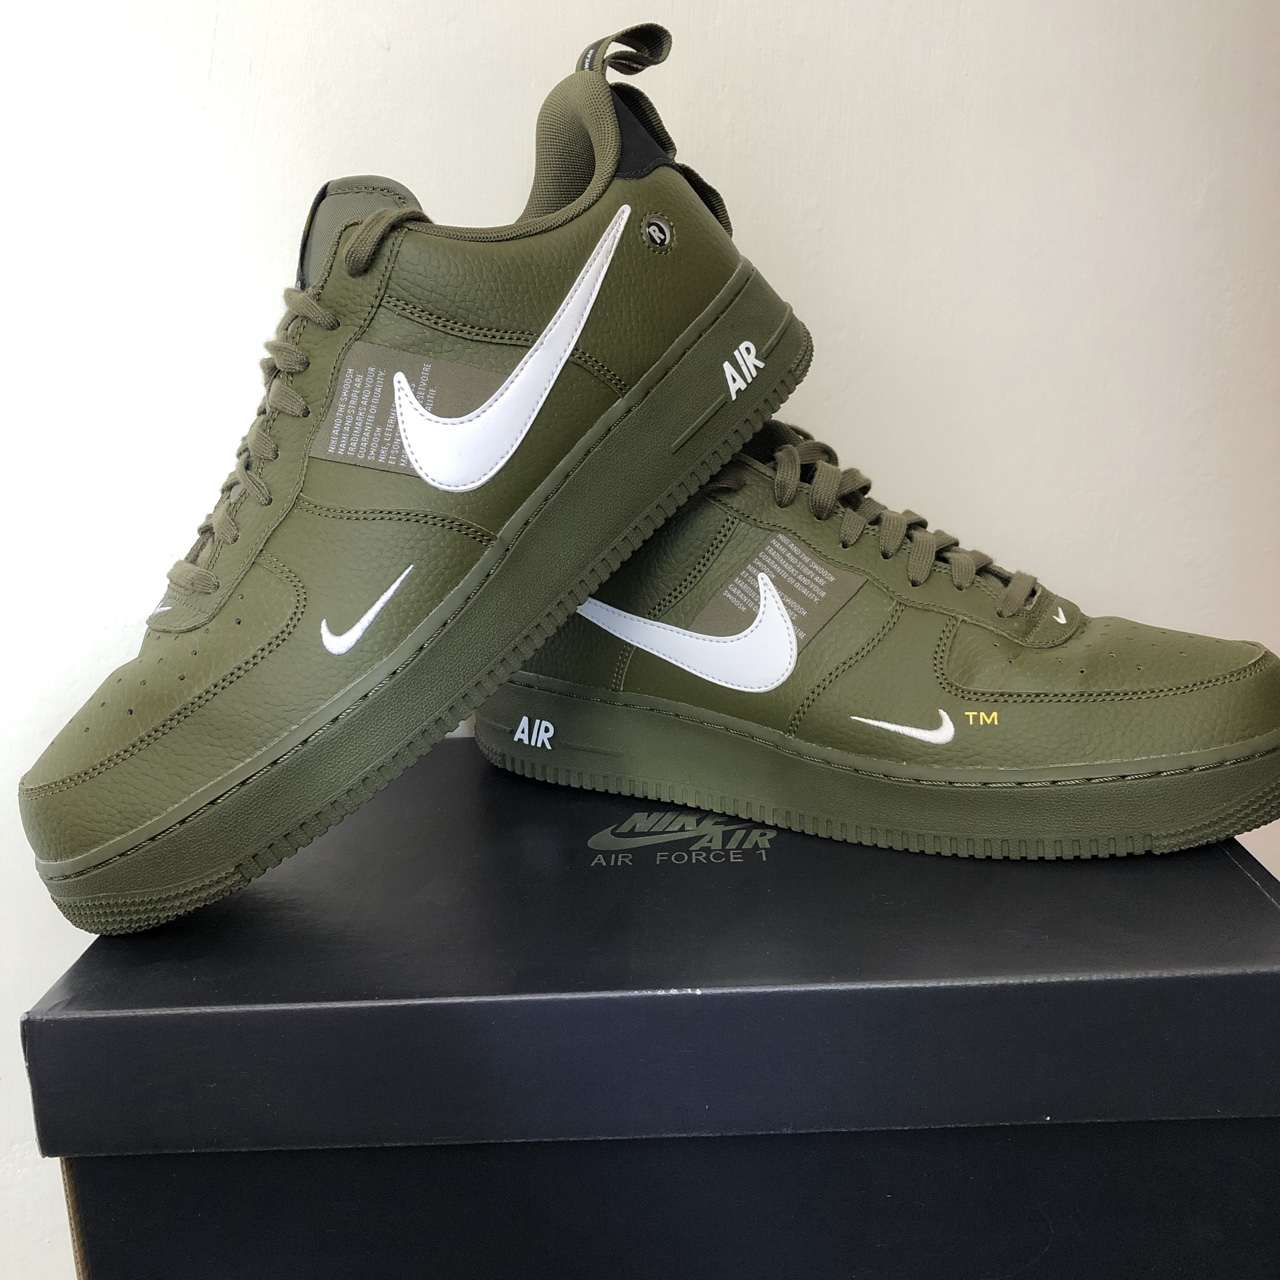 Nike Air Force 1 Utility/Olive Green/Mens Size... - Depop